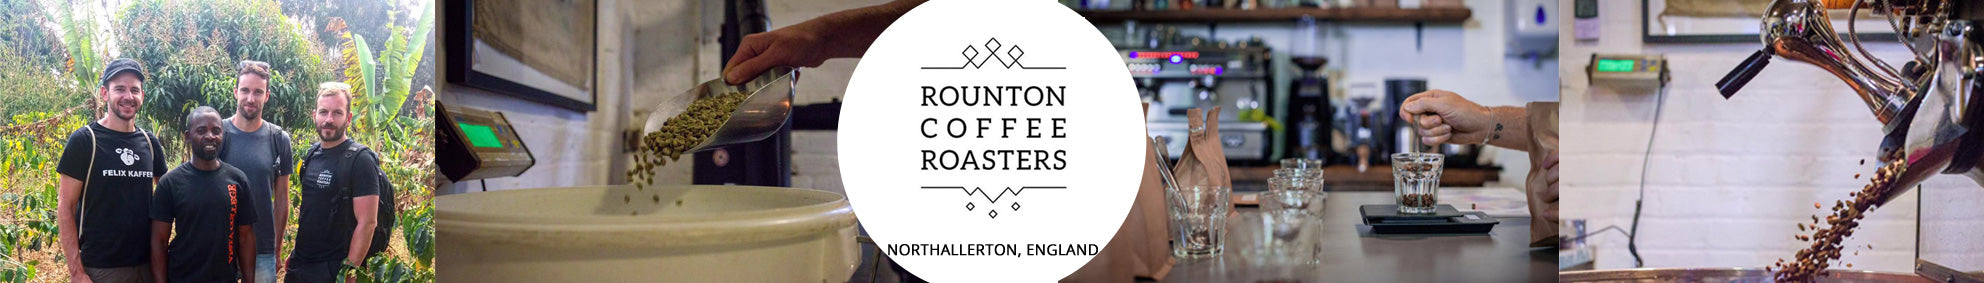 Subscription Coffee Roaster - Rounton Coffee Roasters